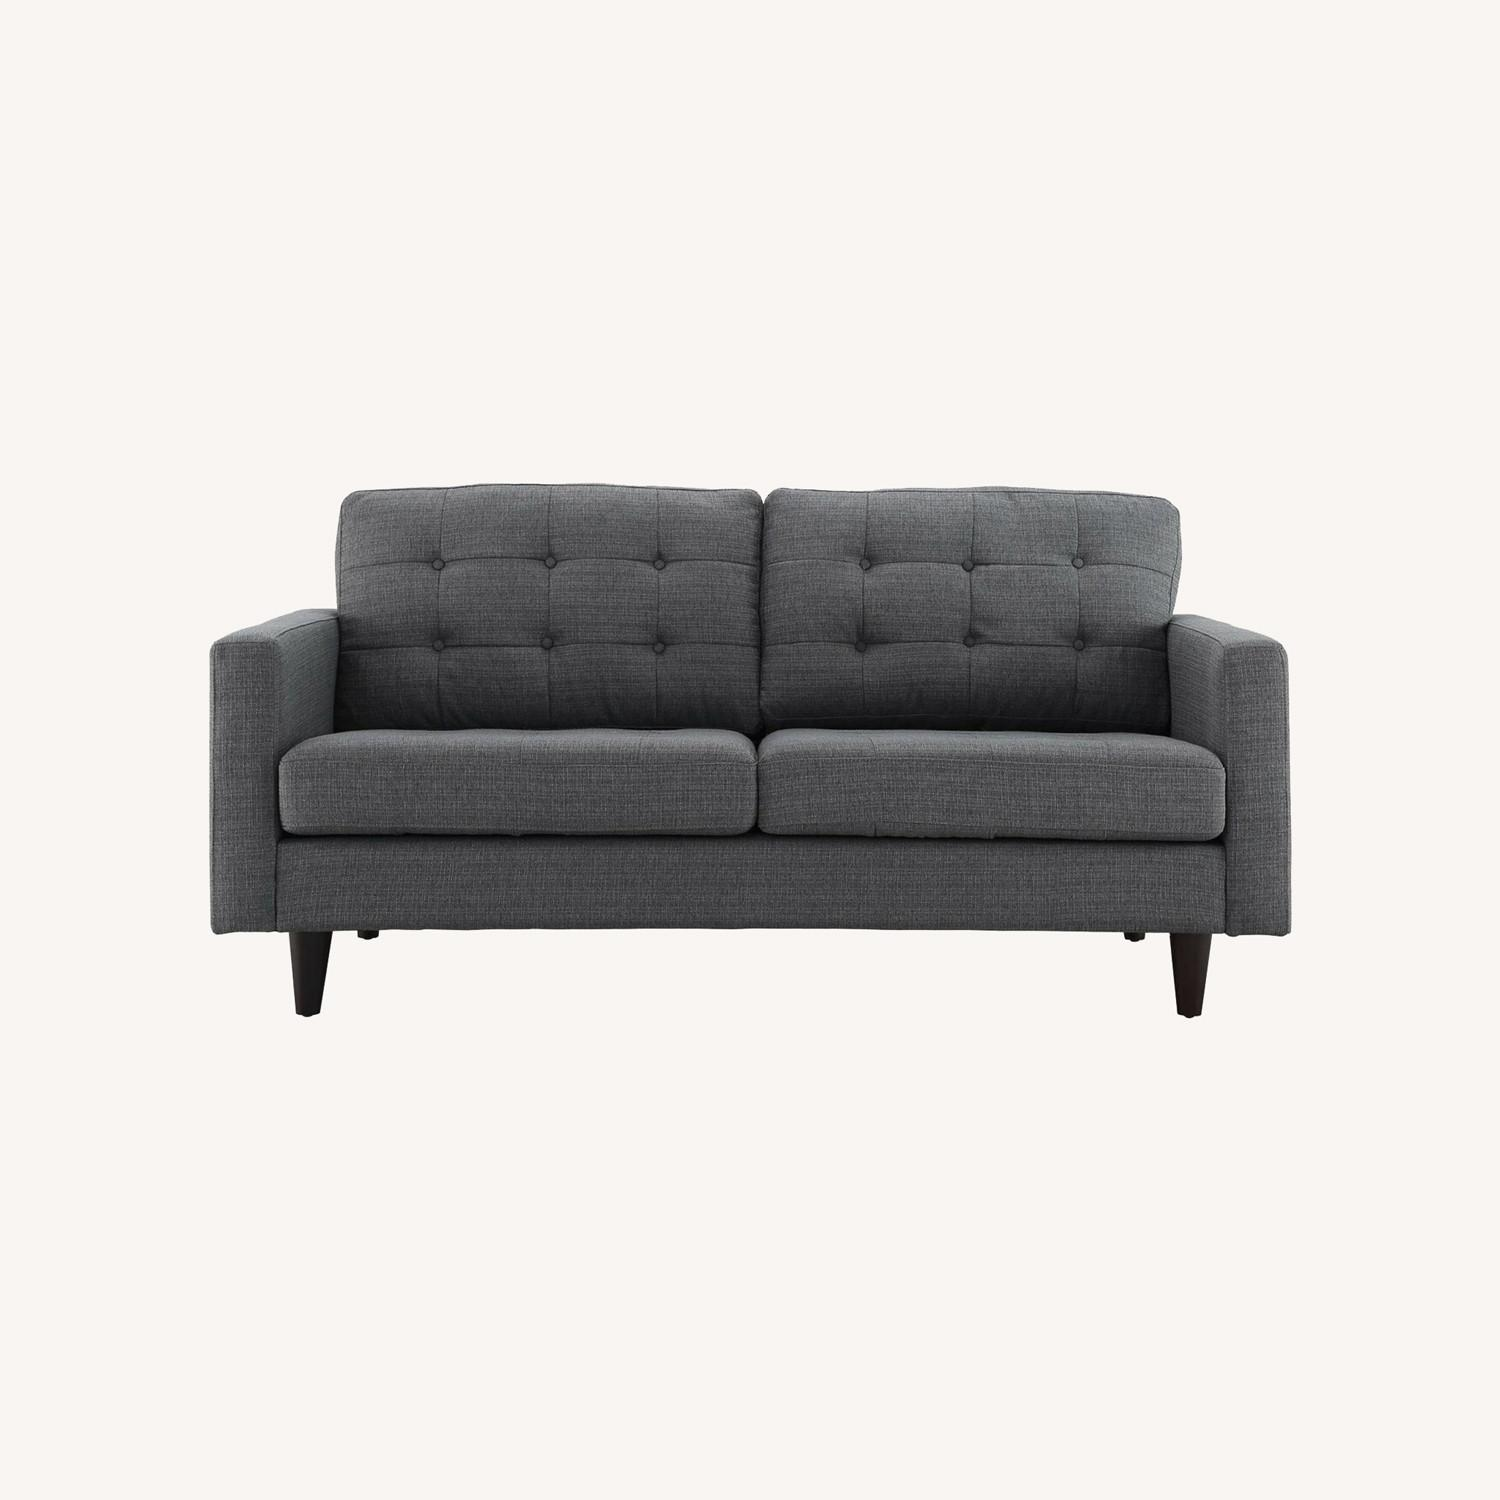 Loveseat In Gray Fabric Upholstery W/ Wood Legs - image-5